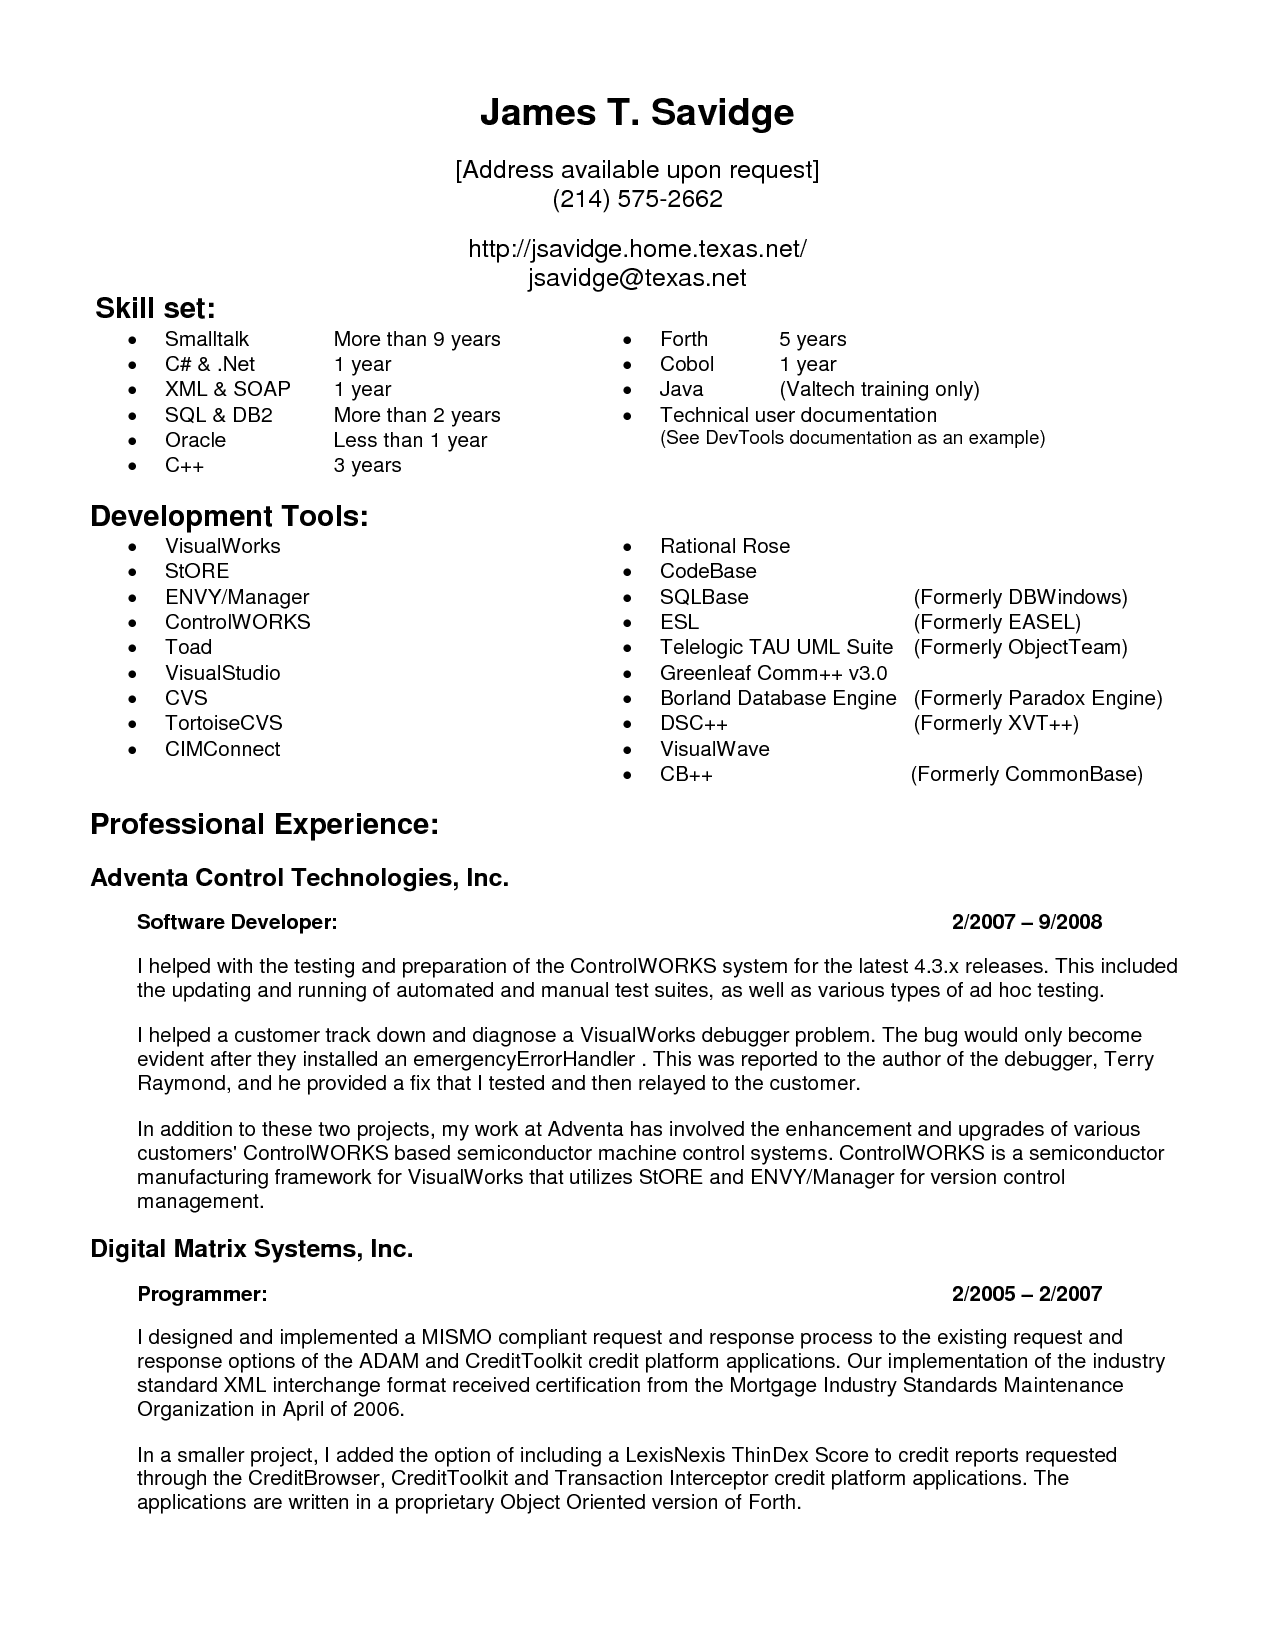 1 Year Experience Cv Template Cv Best Resume Format